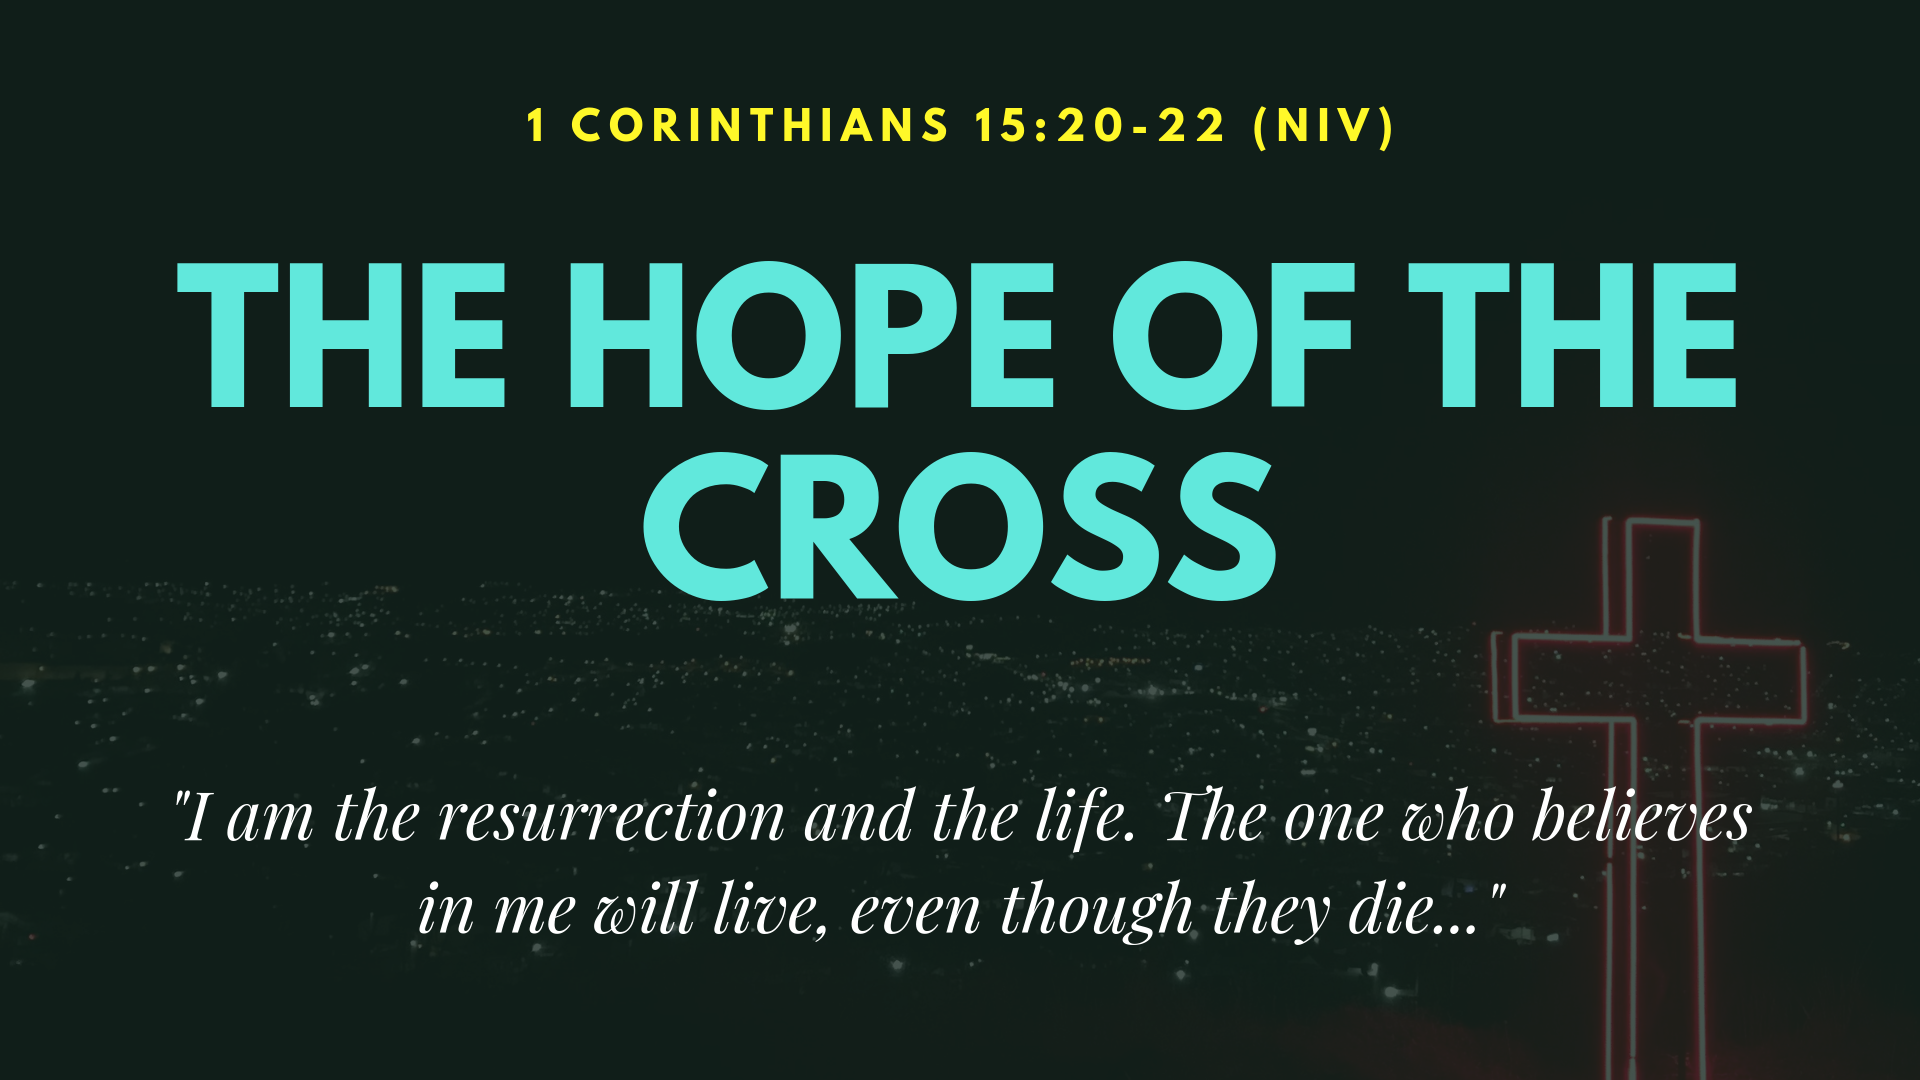 The Hope of the Cross - Falmouth VIneyard